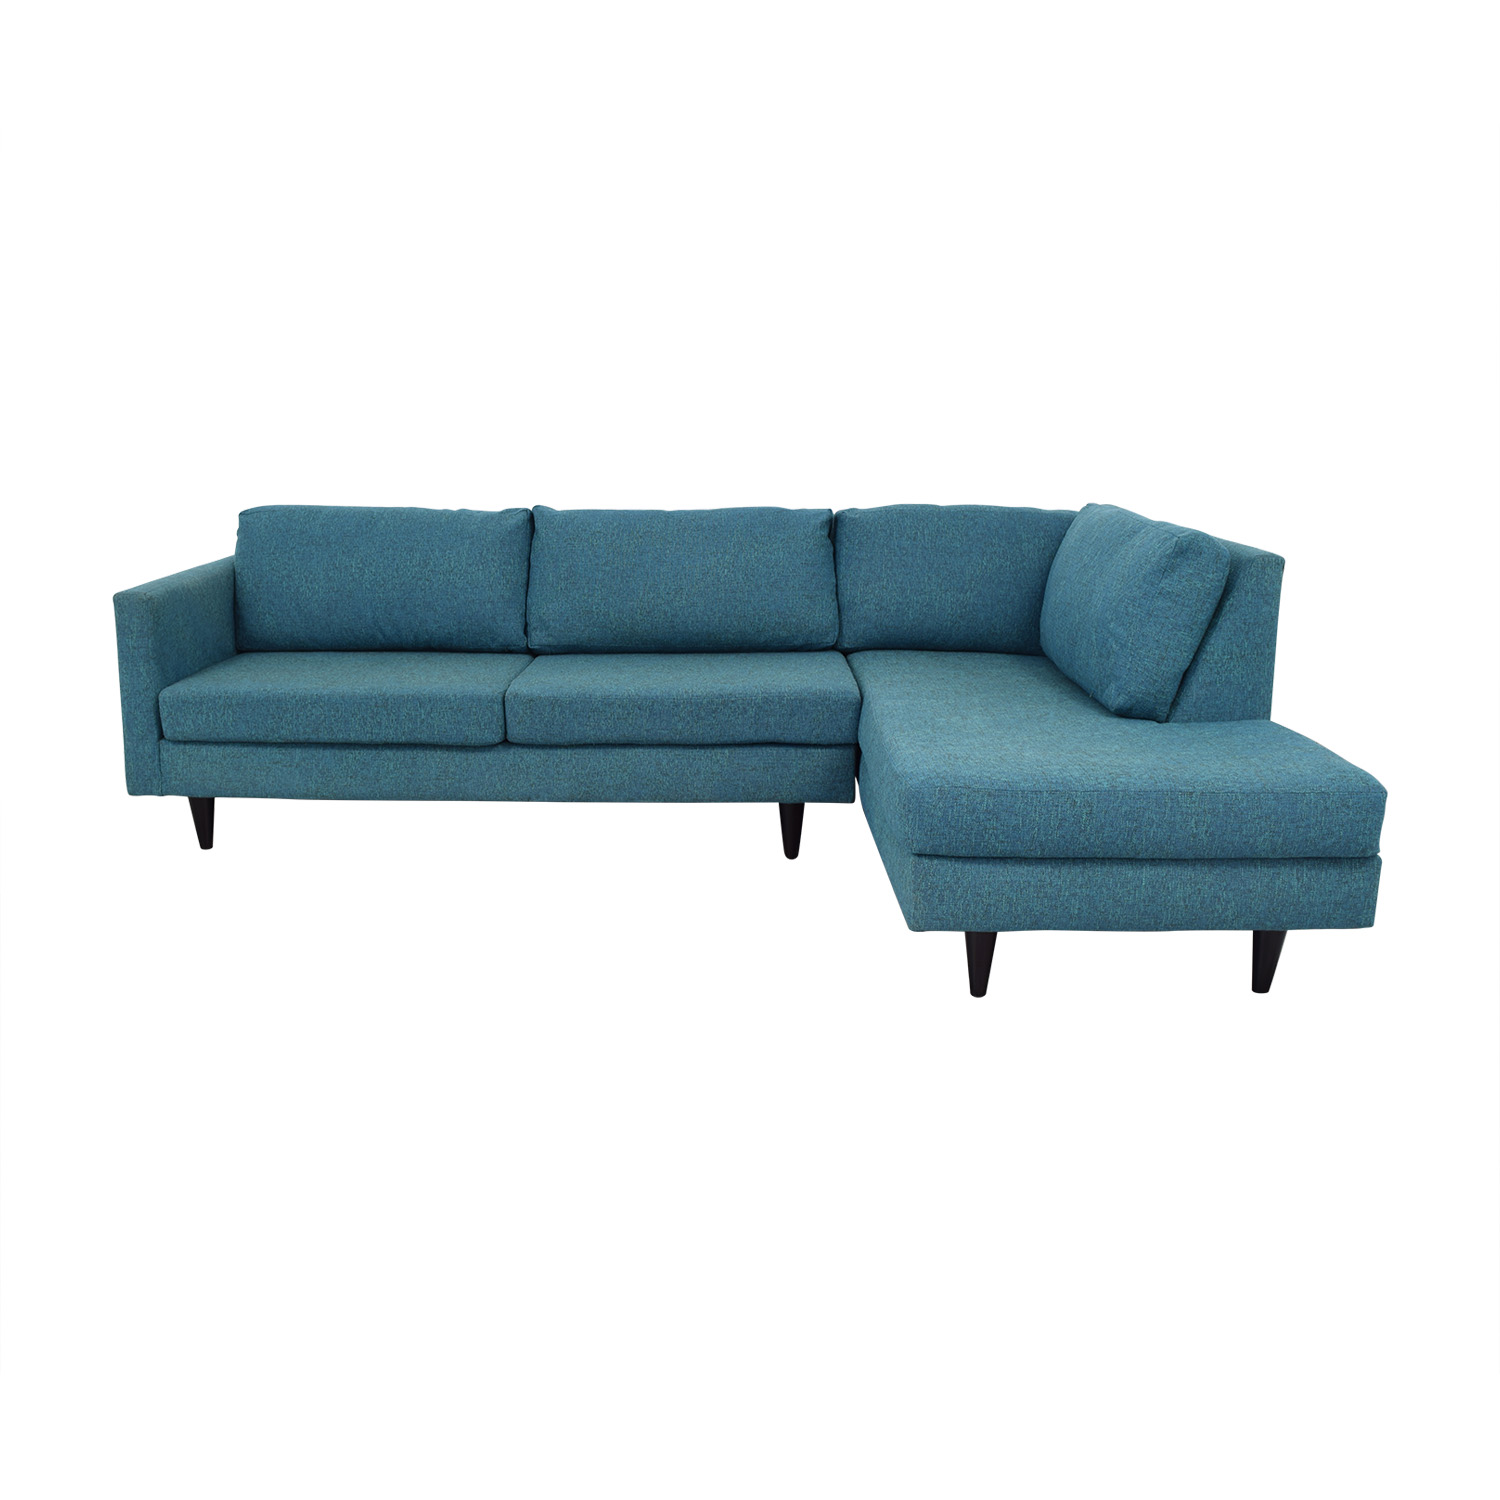 48% OFF - Apt2B Apt2B Virgil Sectional Sofa / Sofas